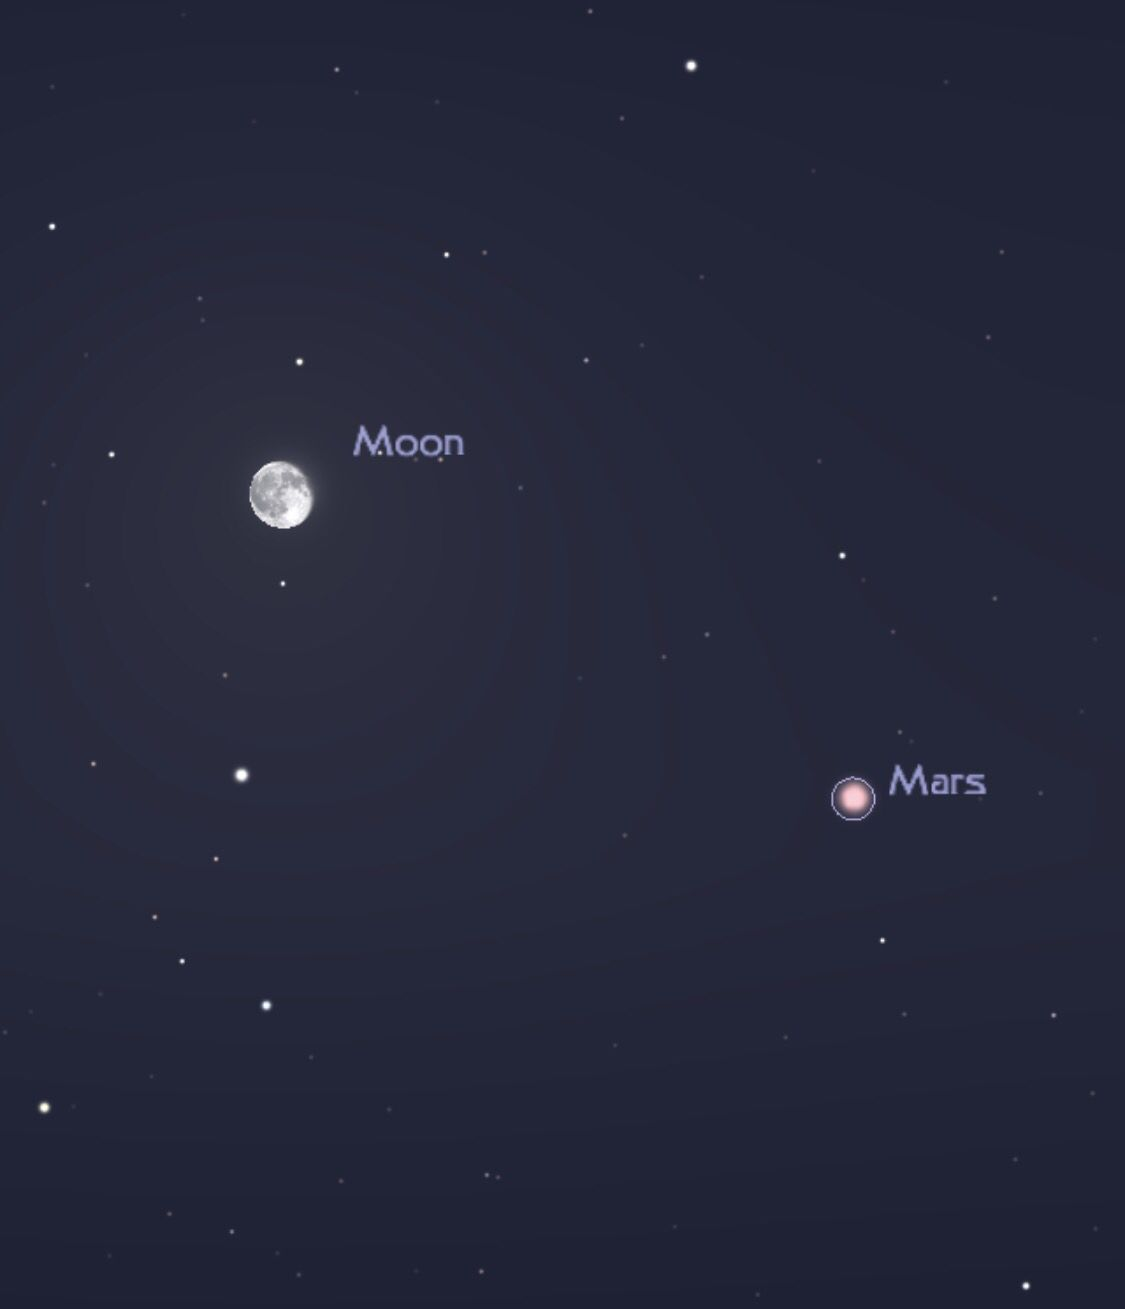 Look To The Eastern Chicago Skies Tonight After 11 00 Pm To Catch A Glimpse Of The Moon And Planet Mars Planets Moon Astronomy